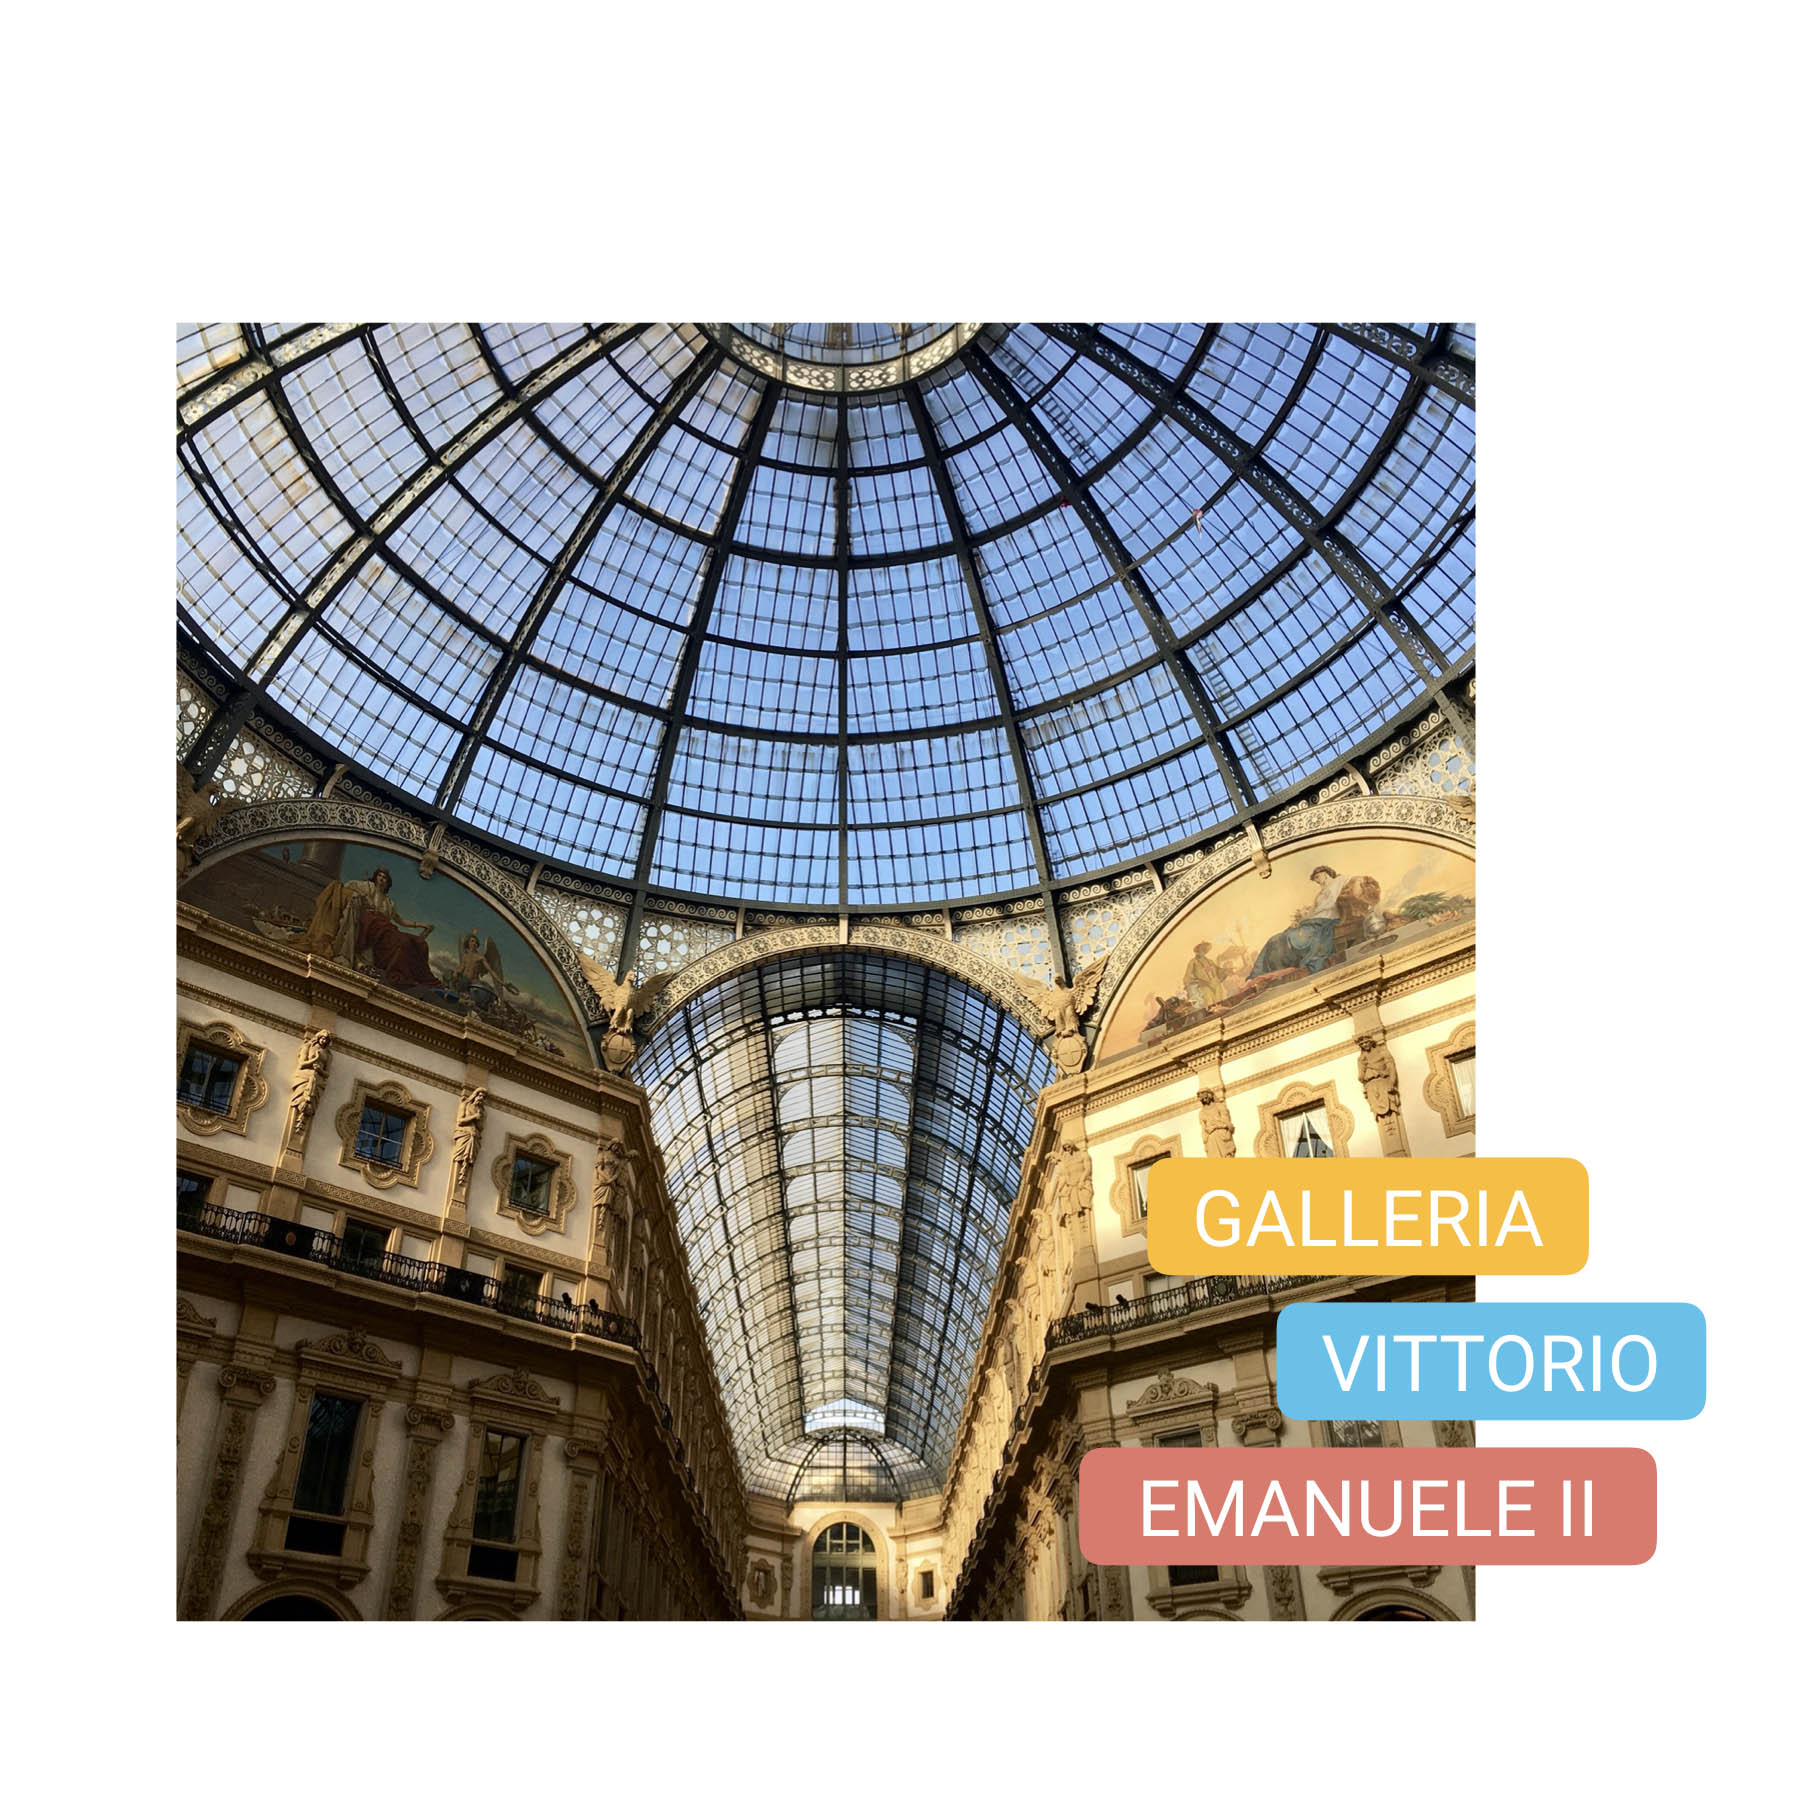 luxury entertainment milan teatro scala theatre vittorio emanuele gallery shopping milano